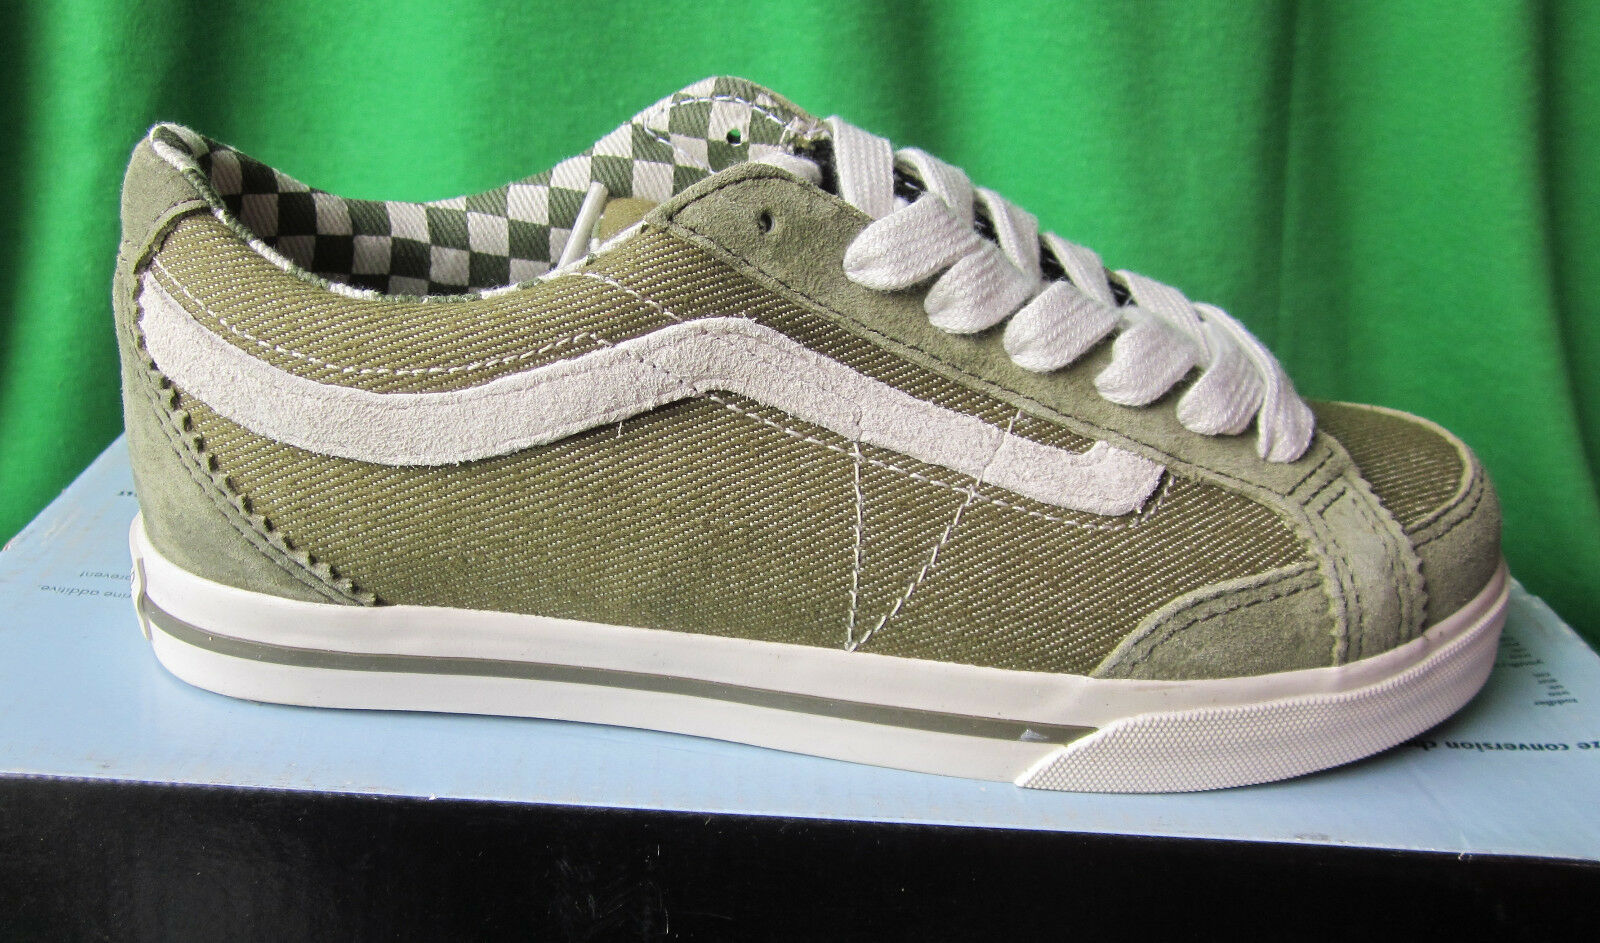 NIB WOMENS VANS BURNT ELBA SKATEBOARD SNEAKERS - BURNT VANS OLIVE - SIZE 5 37b84e